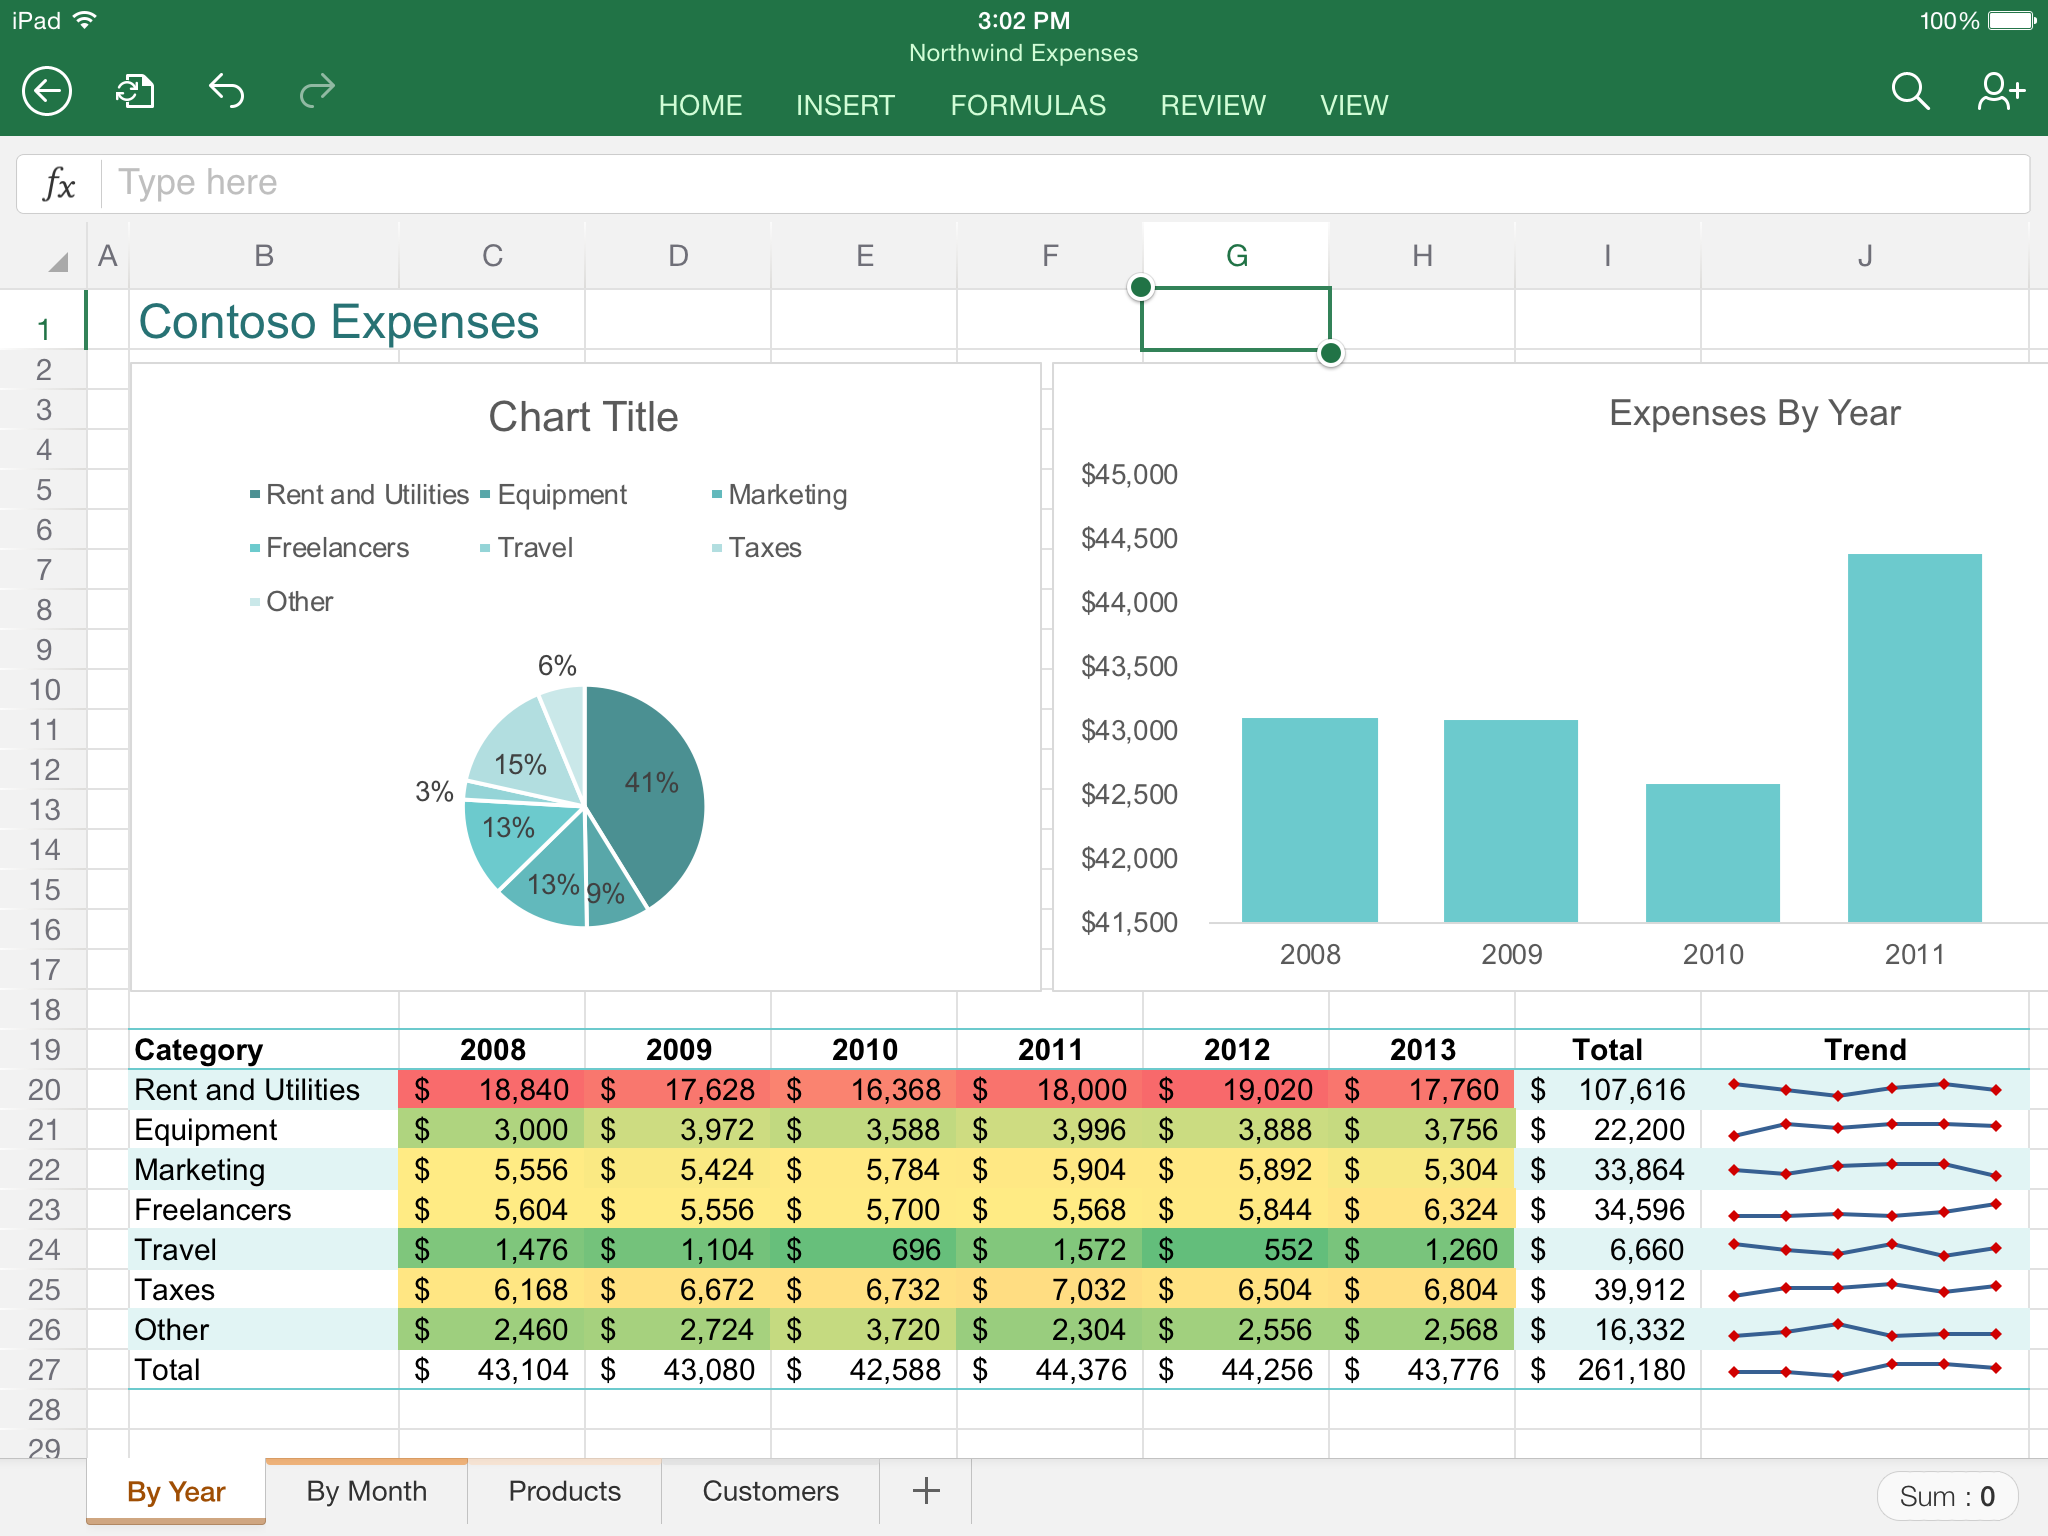 Ediblewildsus  Inspiring App Highlight Excel  Mobile Digital Now With Handsome Excel In Action With Comely Excel Vba New Workbook Also Excel  Drop Down In Addition How To Find Averages On Excel And Excel Mixed Reference As Well As Vba Excel Filter Additionally Signs In Excel From Youstonybrookedu With Ediblewildsus  Handsome App Highlight Excel  Mobile Digital Now With Comely Excel In Action And Inspiring Excel Vba New Workbook Also Excel  Drop Down In Addition How To Find Averages On Excel From Youstonybrookedu